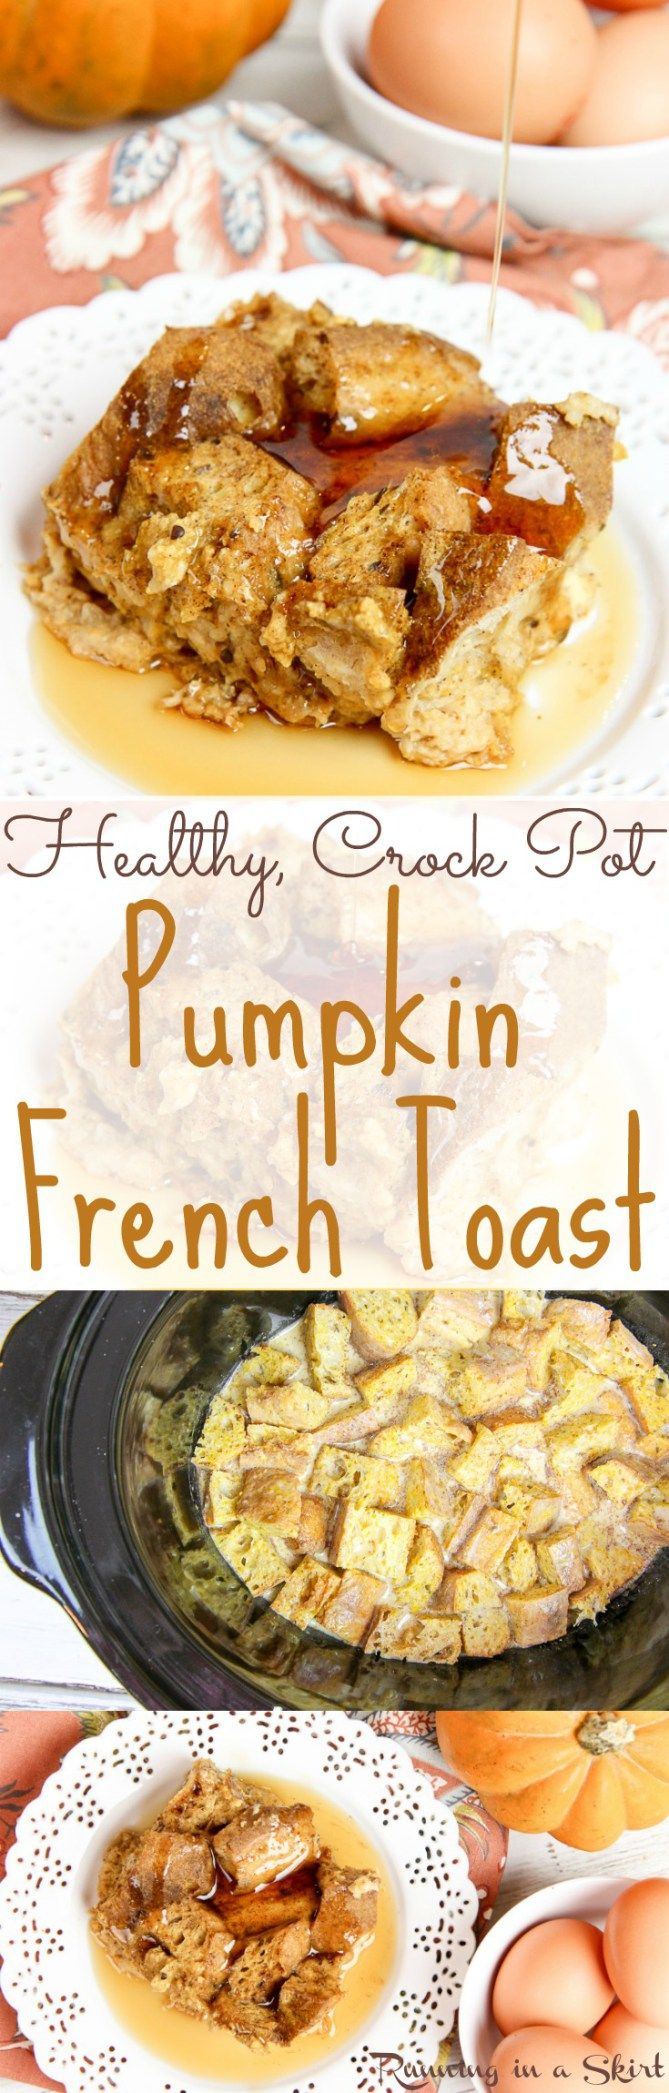 Healthier Crock Pot Pumpkin French Toast